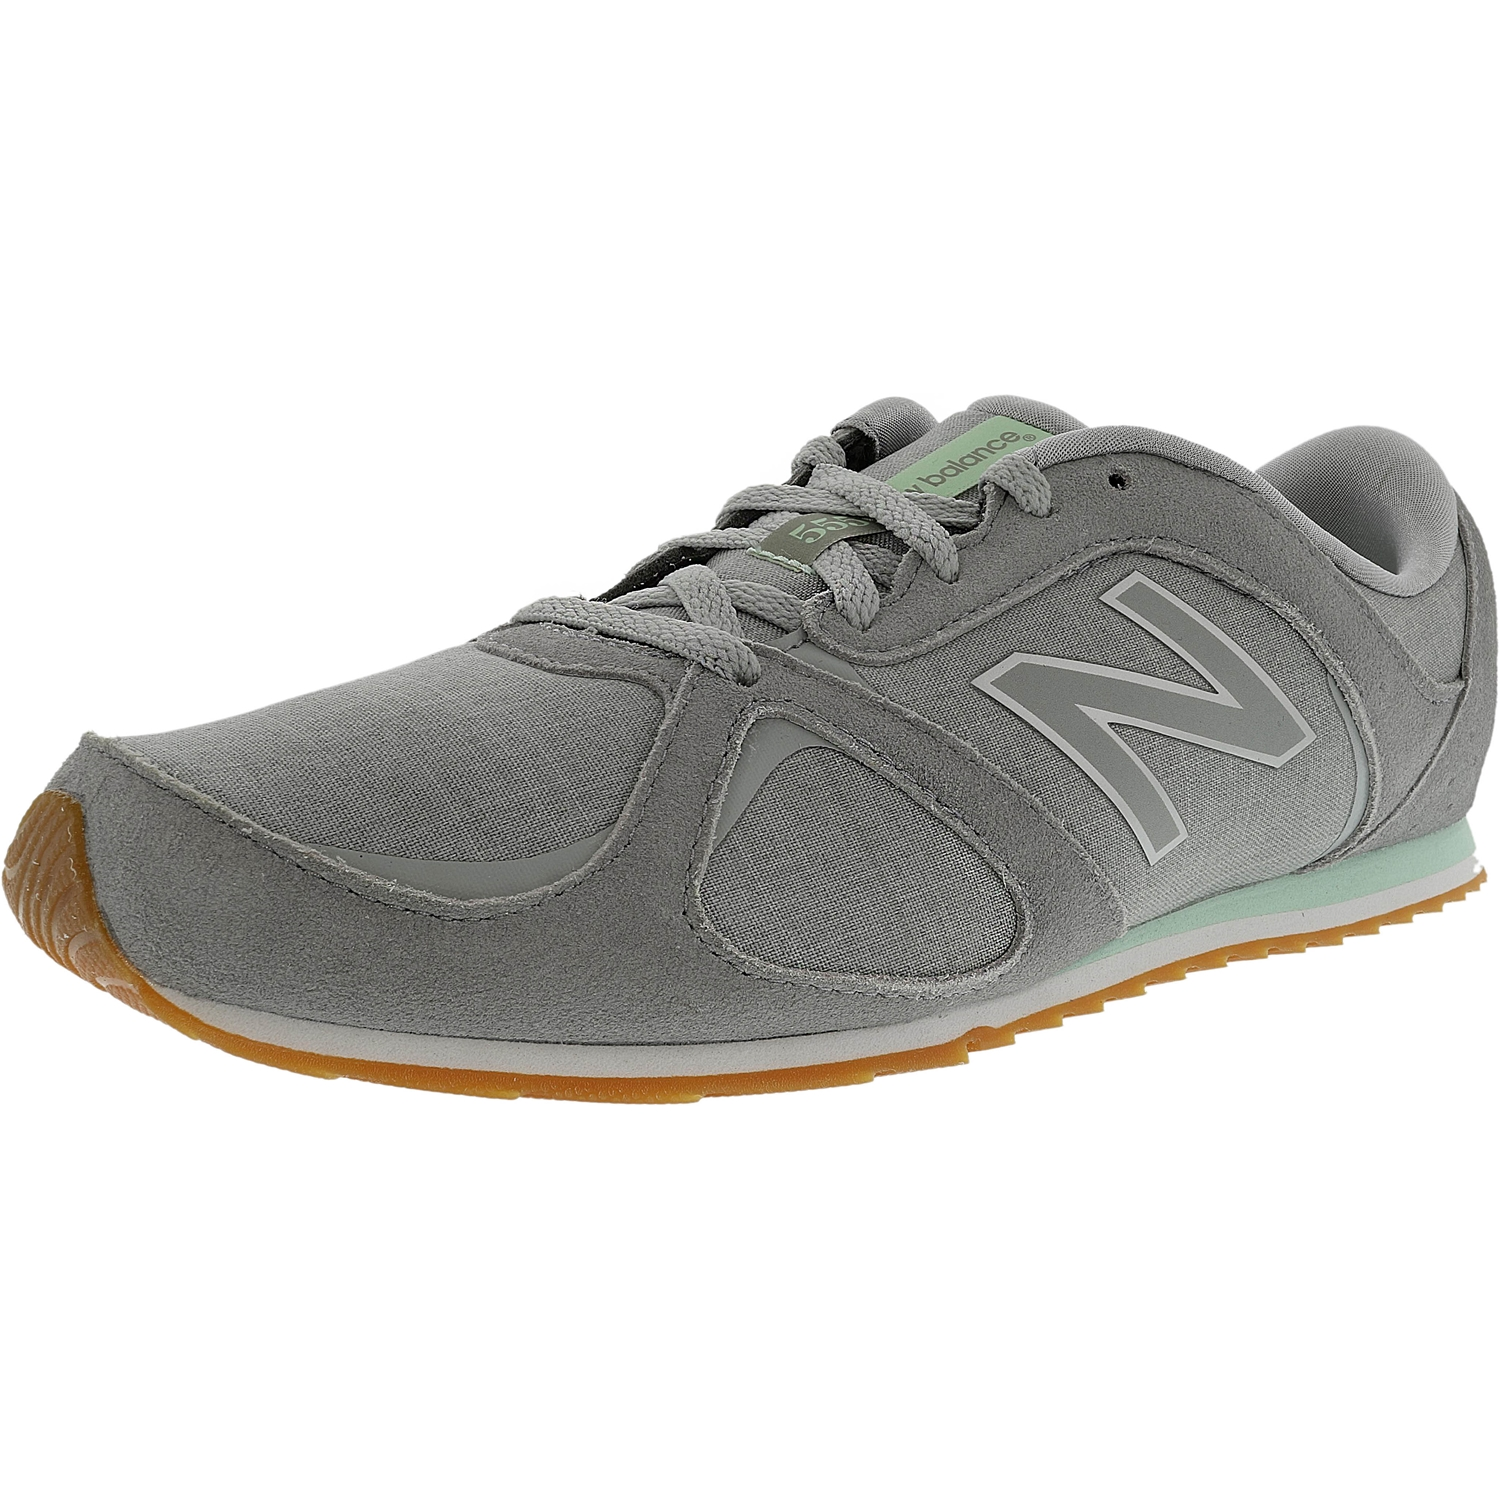 New Balance Women's Wl555 Dl Ankle-High Fabric Cross Trainer Shoe 6W by New Balance